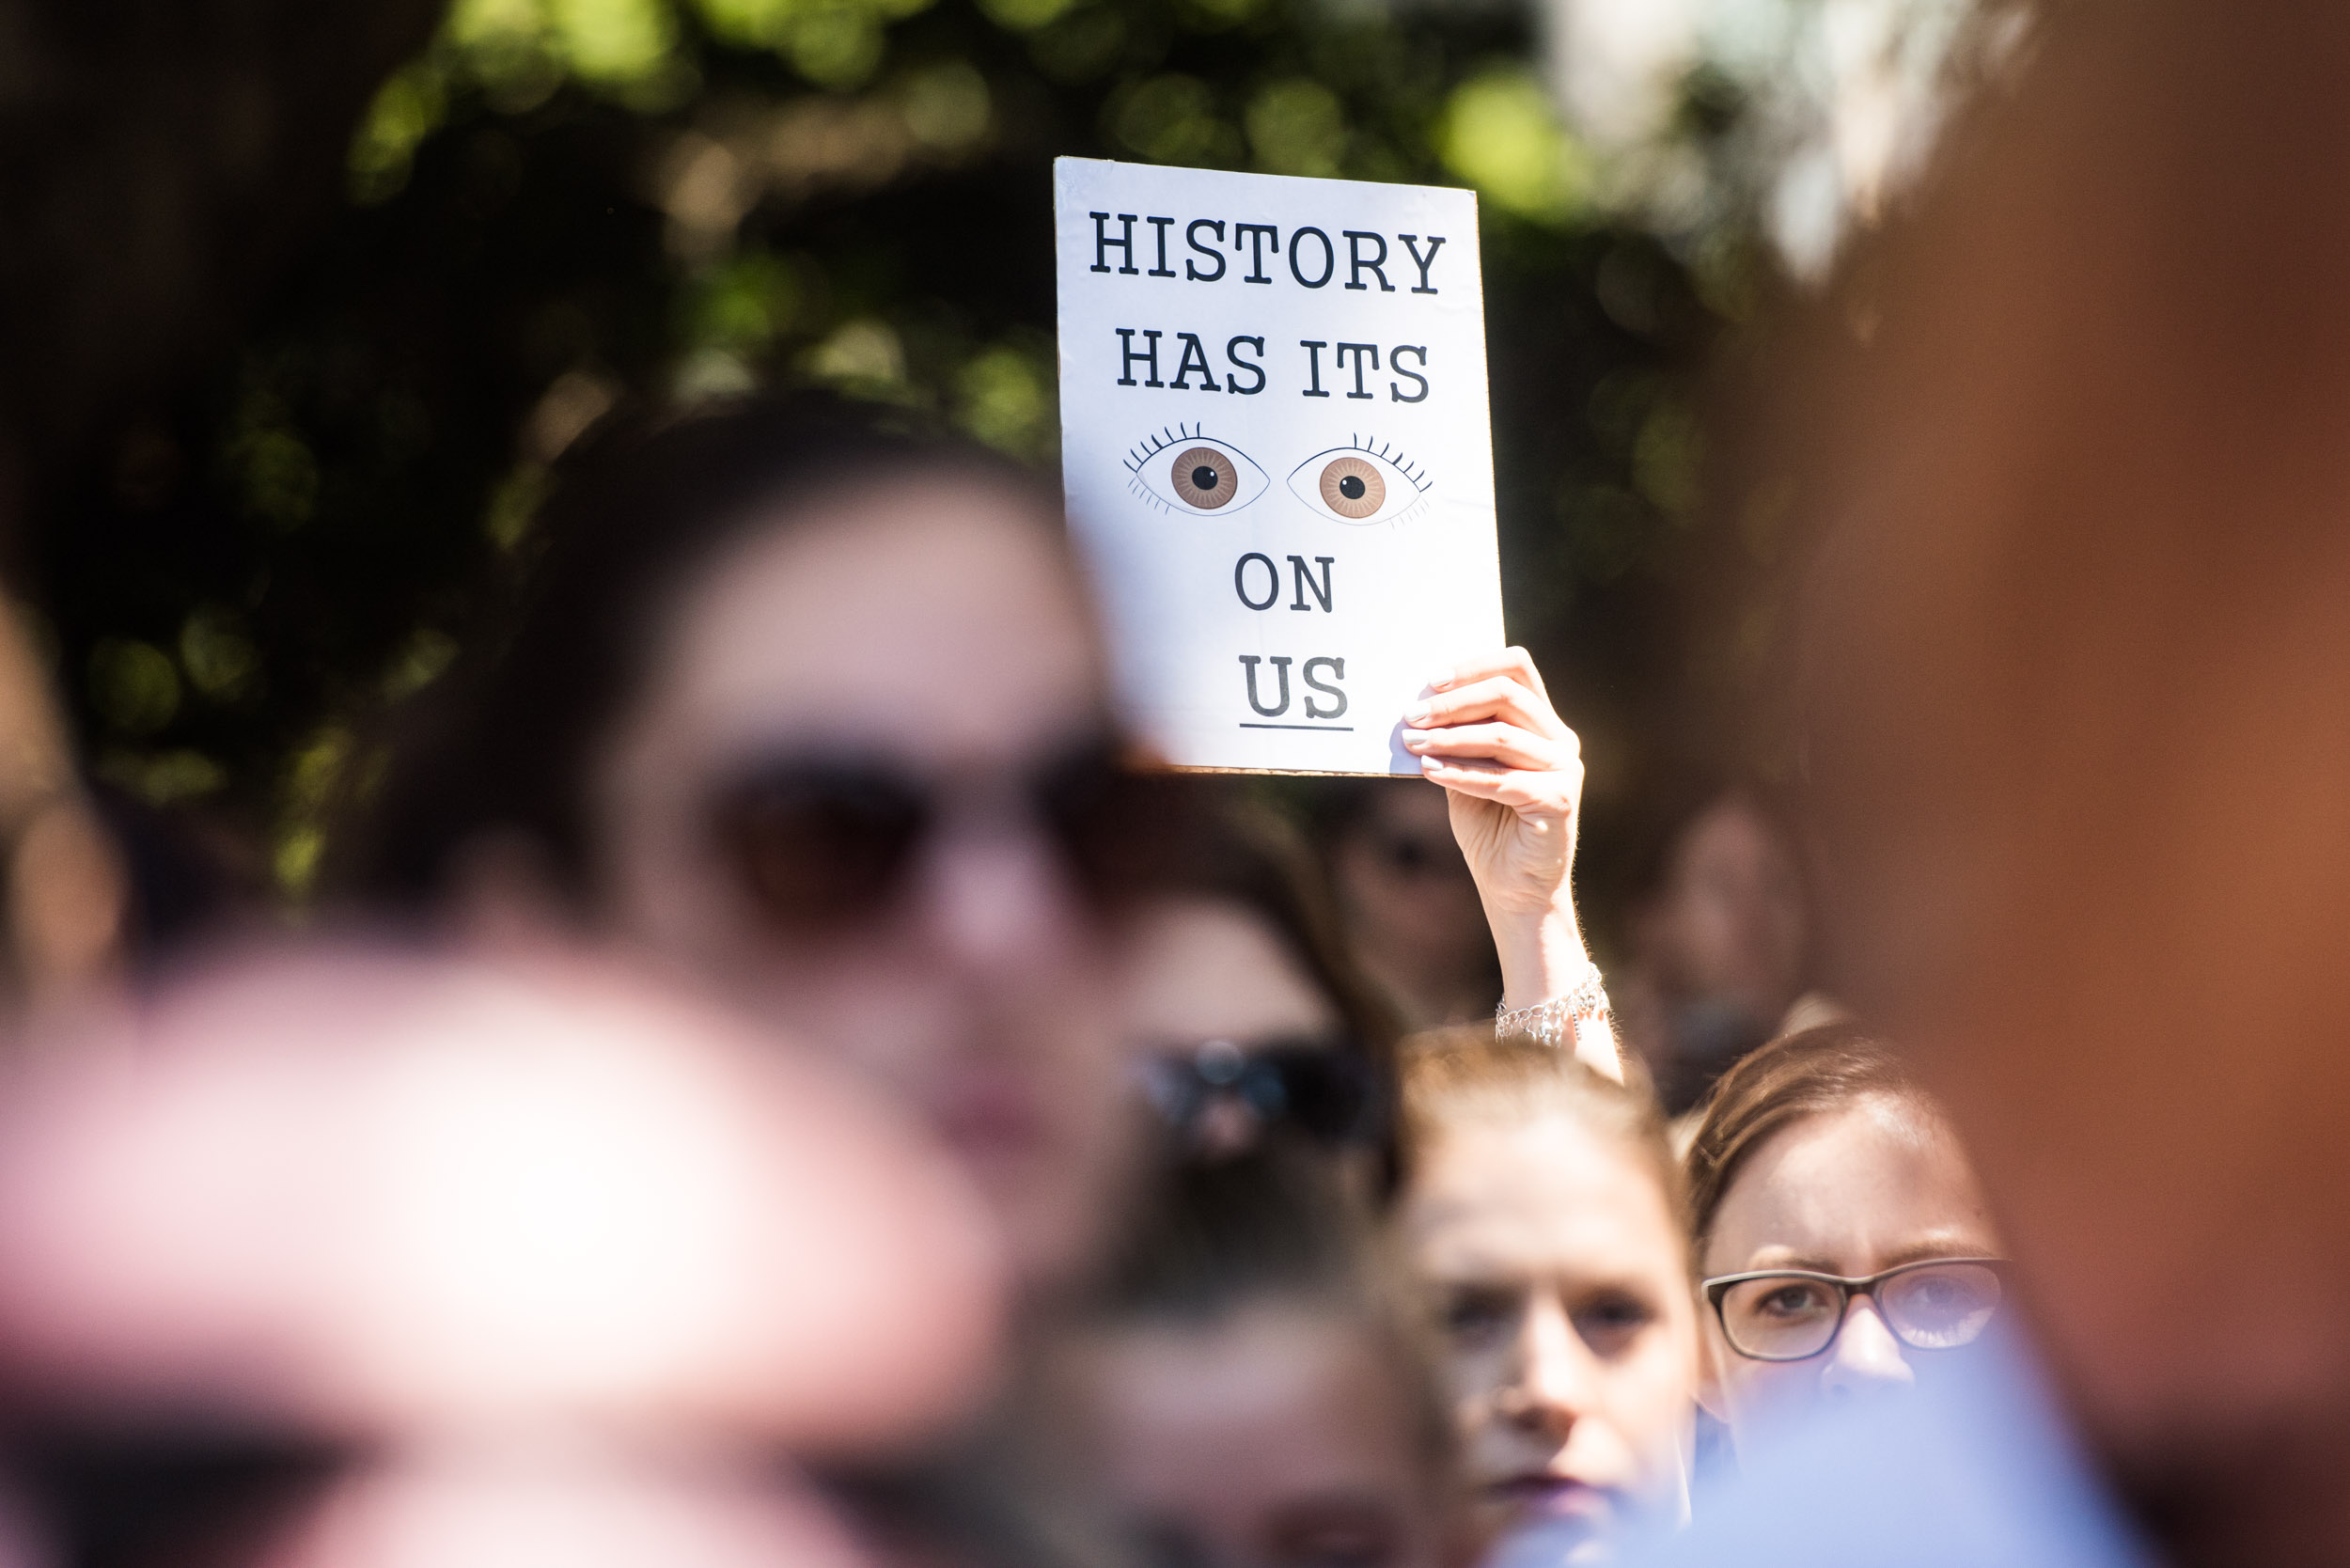 History has its eye on us - womens march - Current events - Photo credit Nicola Bailey.jpg